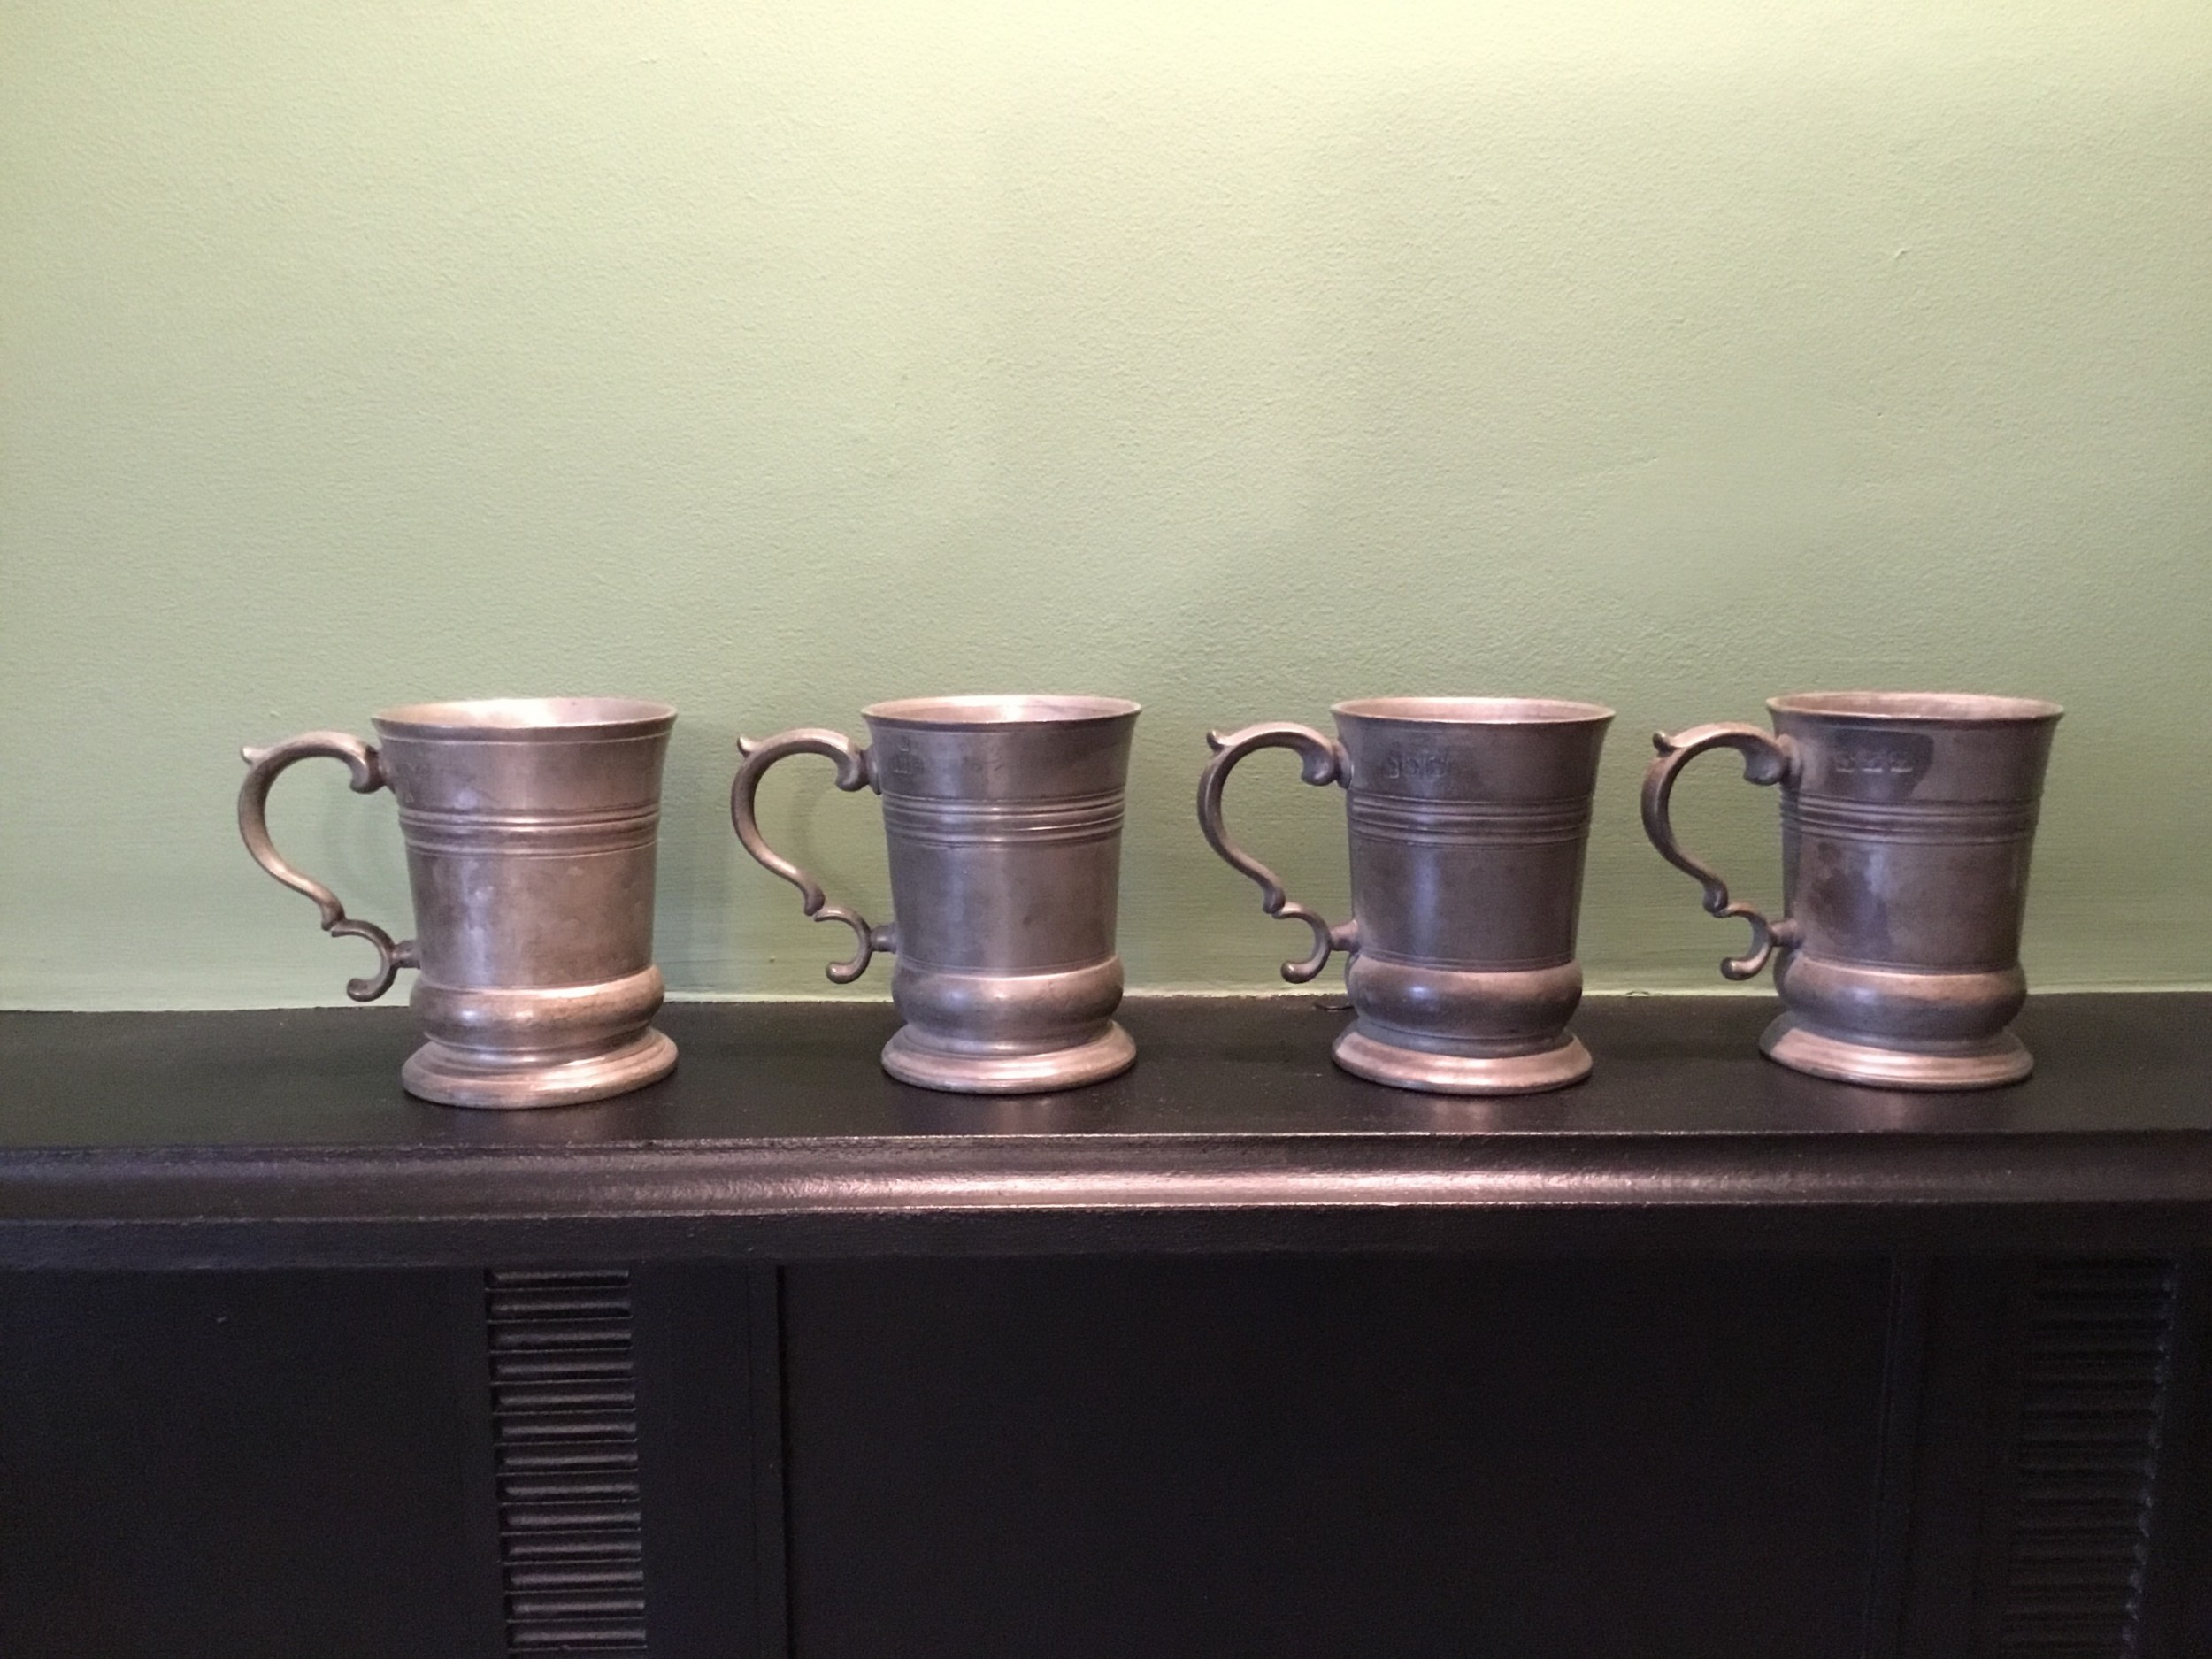 a set of four identical half pint pewter mugs